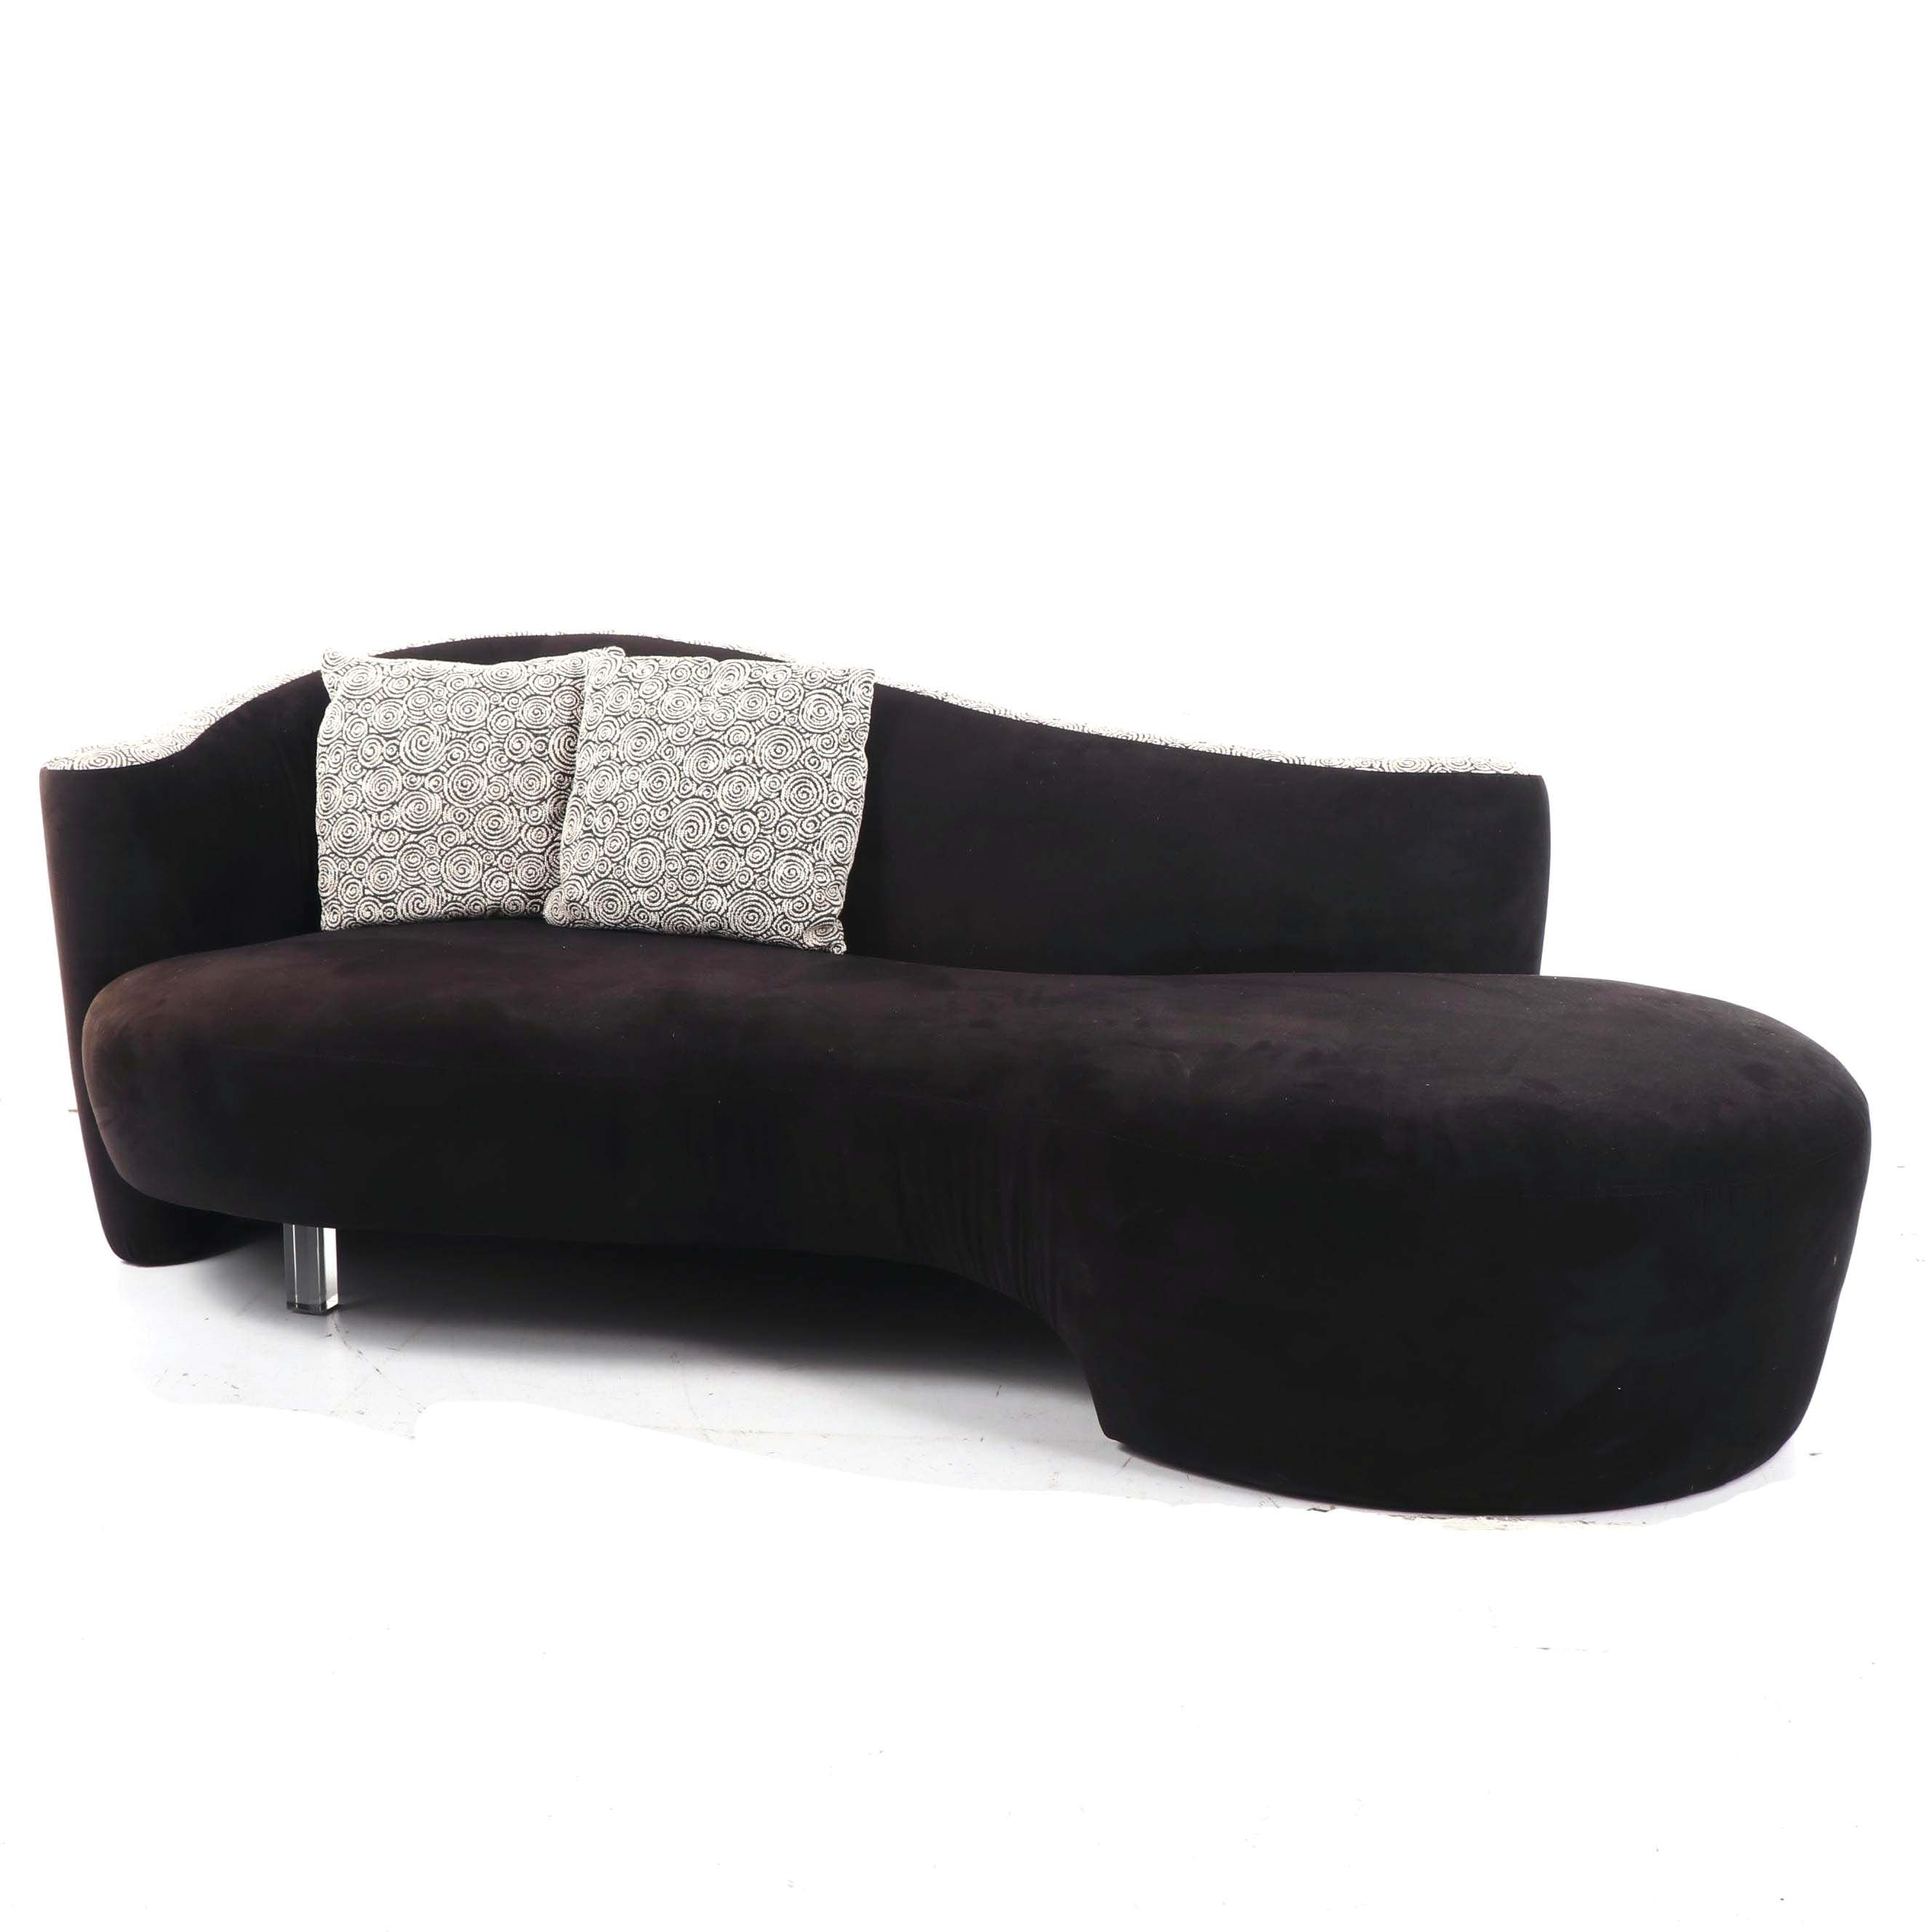 Curved Sofa in the Style of Kagan for Weiman-Preview Furniture, 21st Century